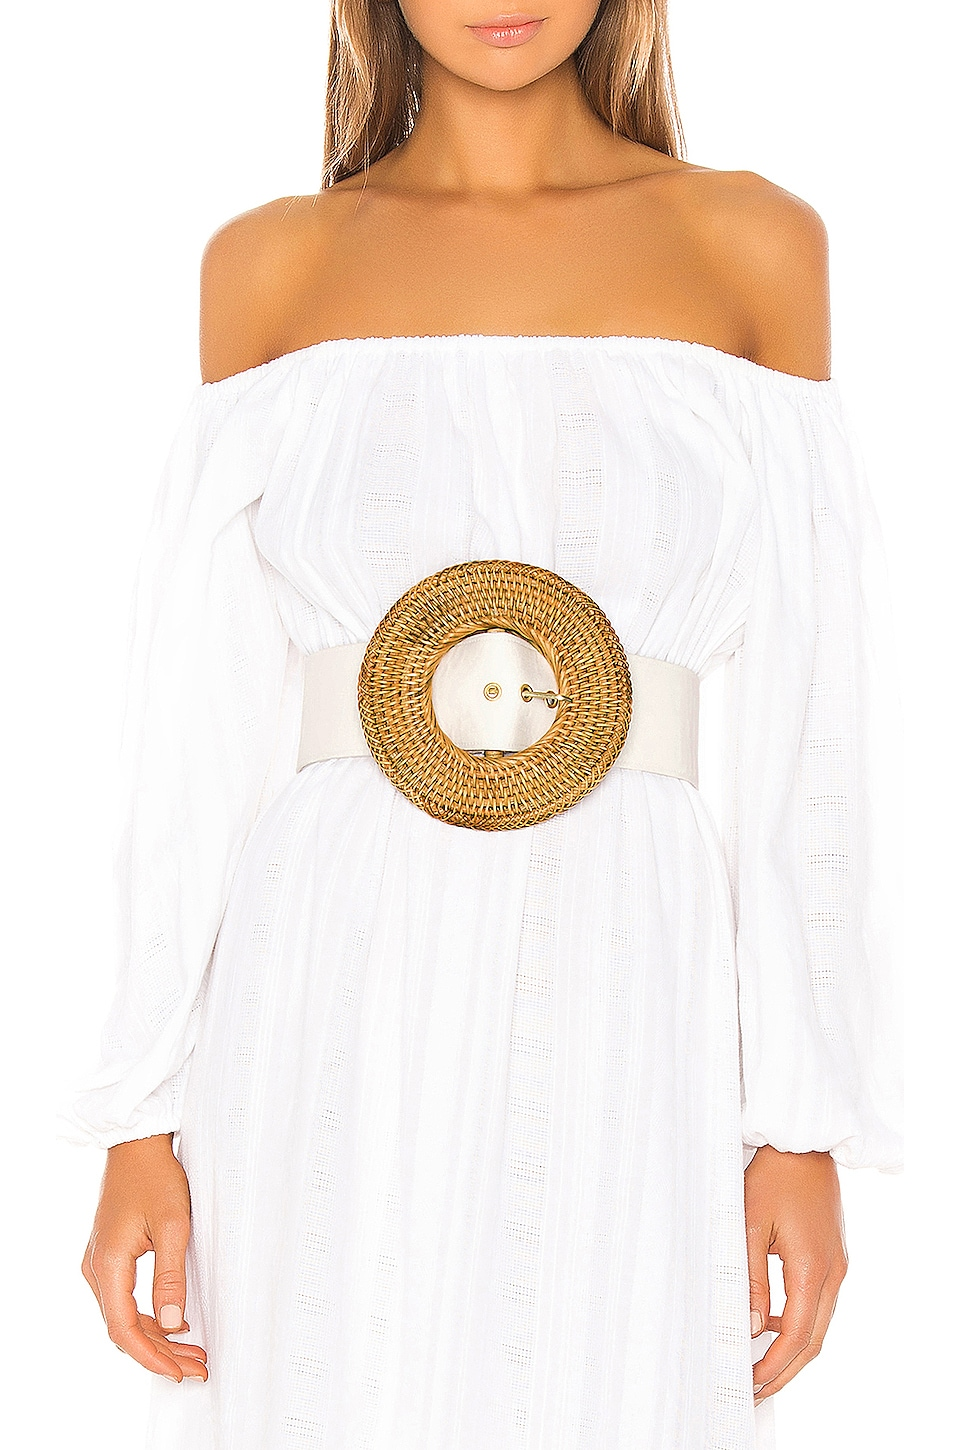 Cult Gaia Gemma Belt in White